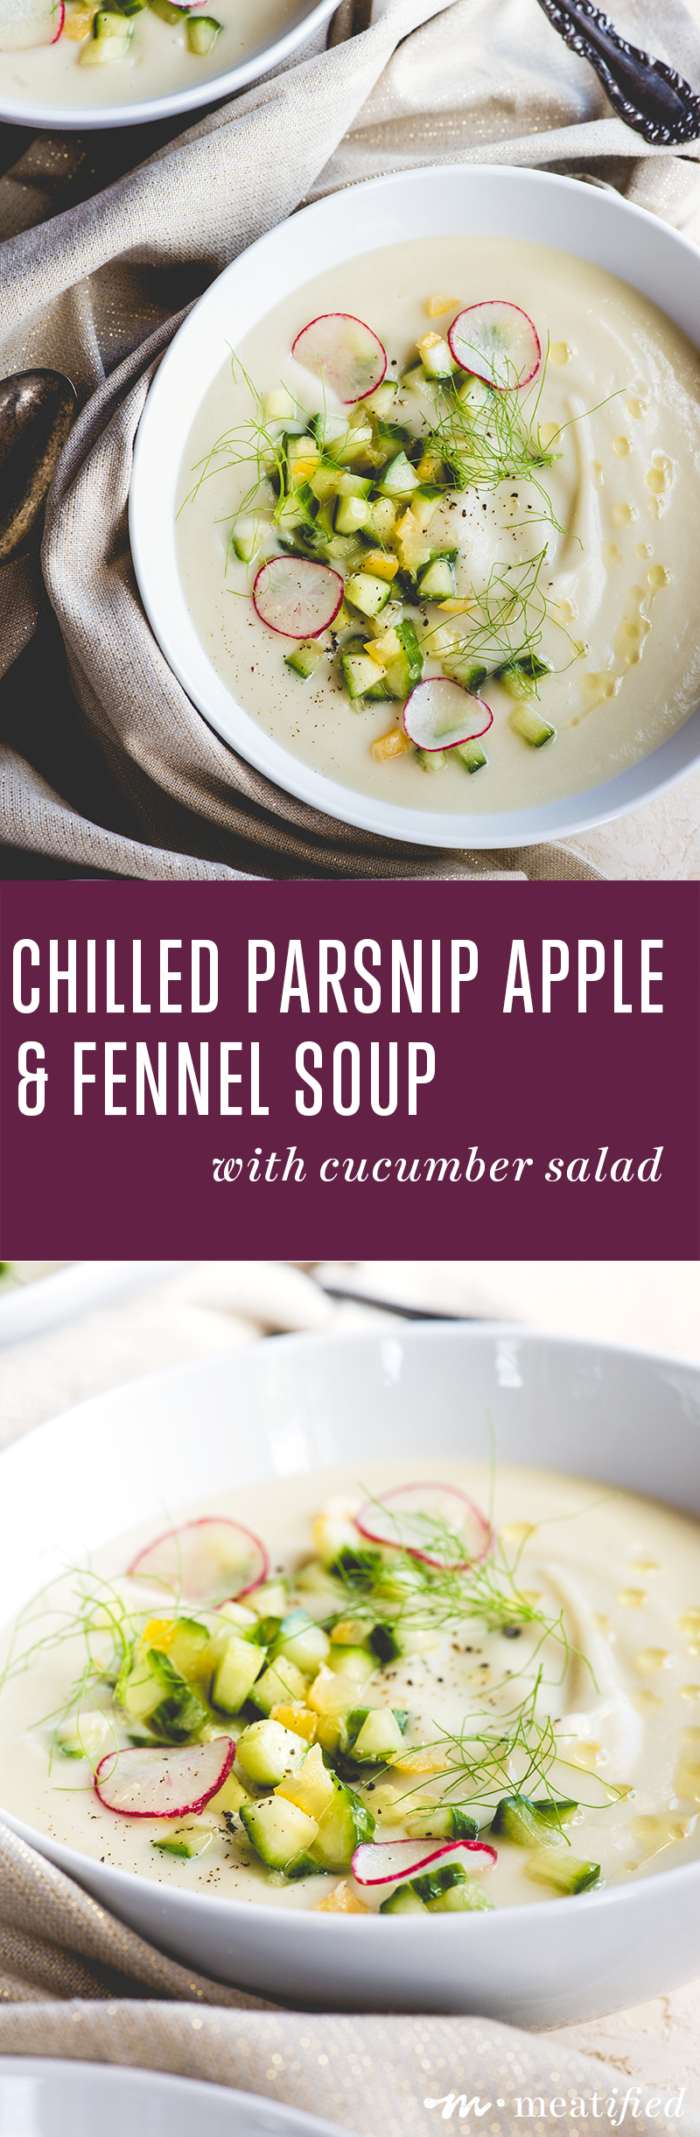 This Parsnip Apple & Fennel Soup from http://meatified.com is a season stretcher. It's creamy & comforting, but chilled & topped with cucumber salad, it's light & bright, too.